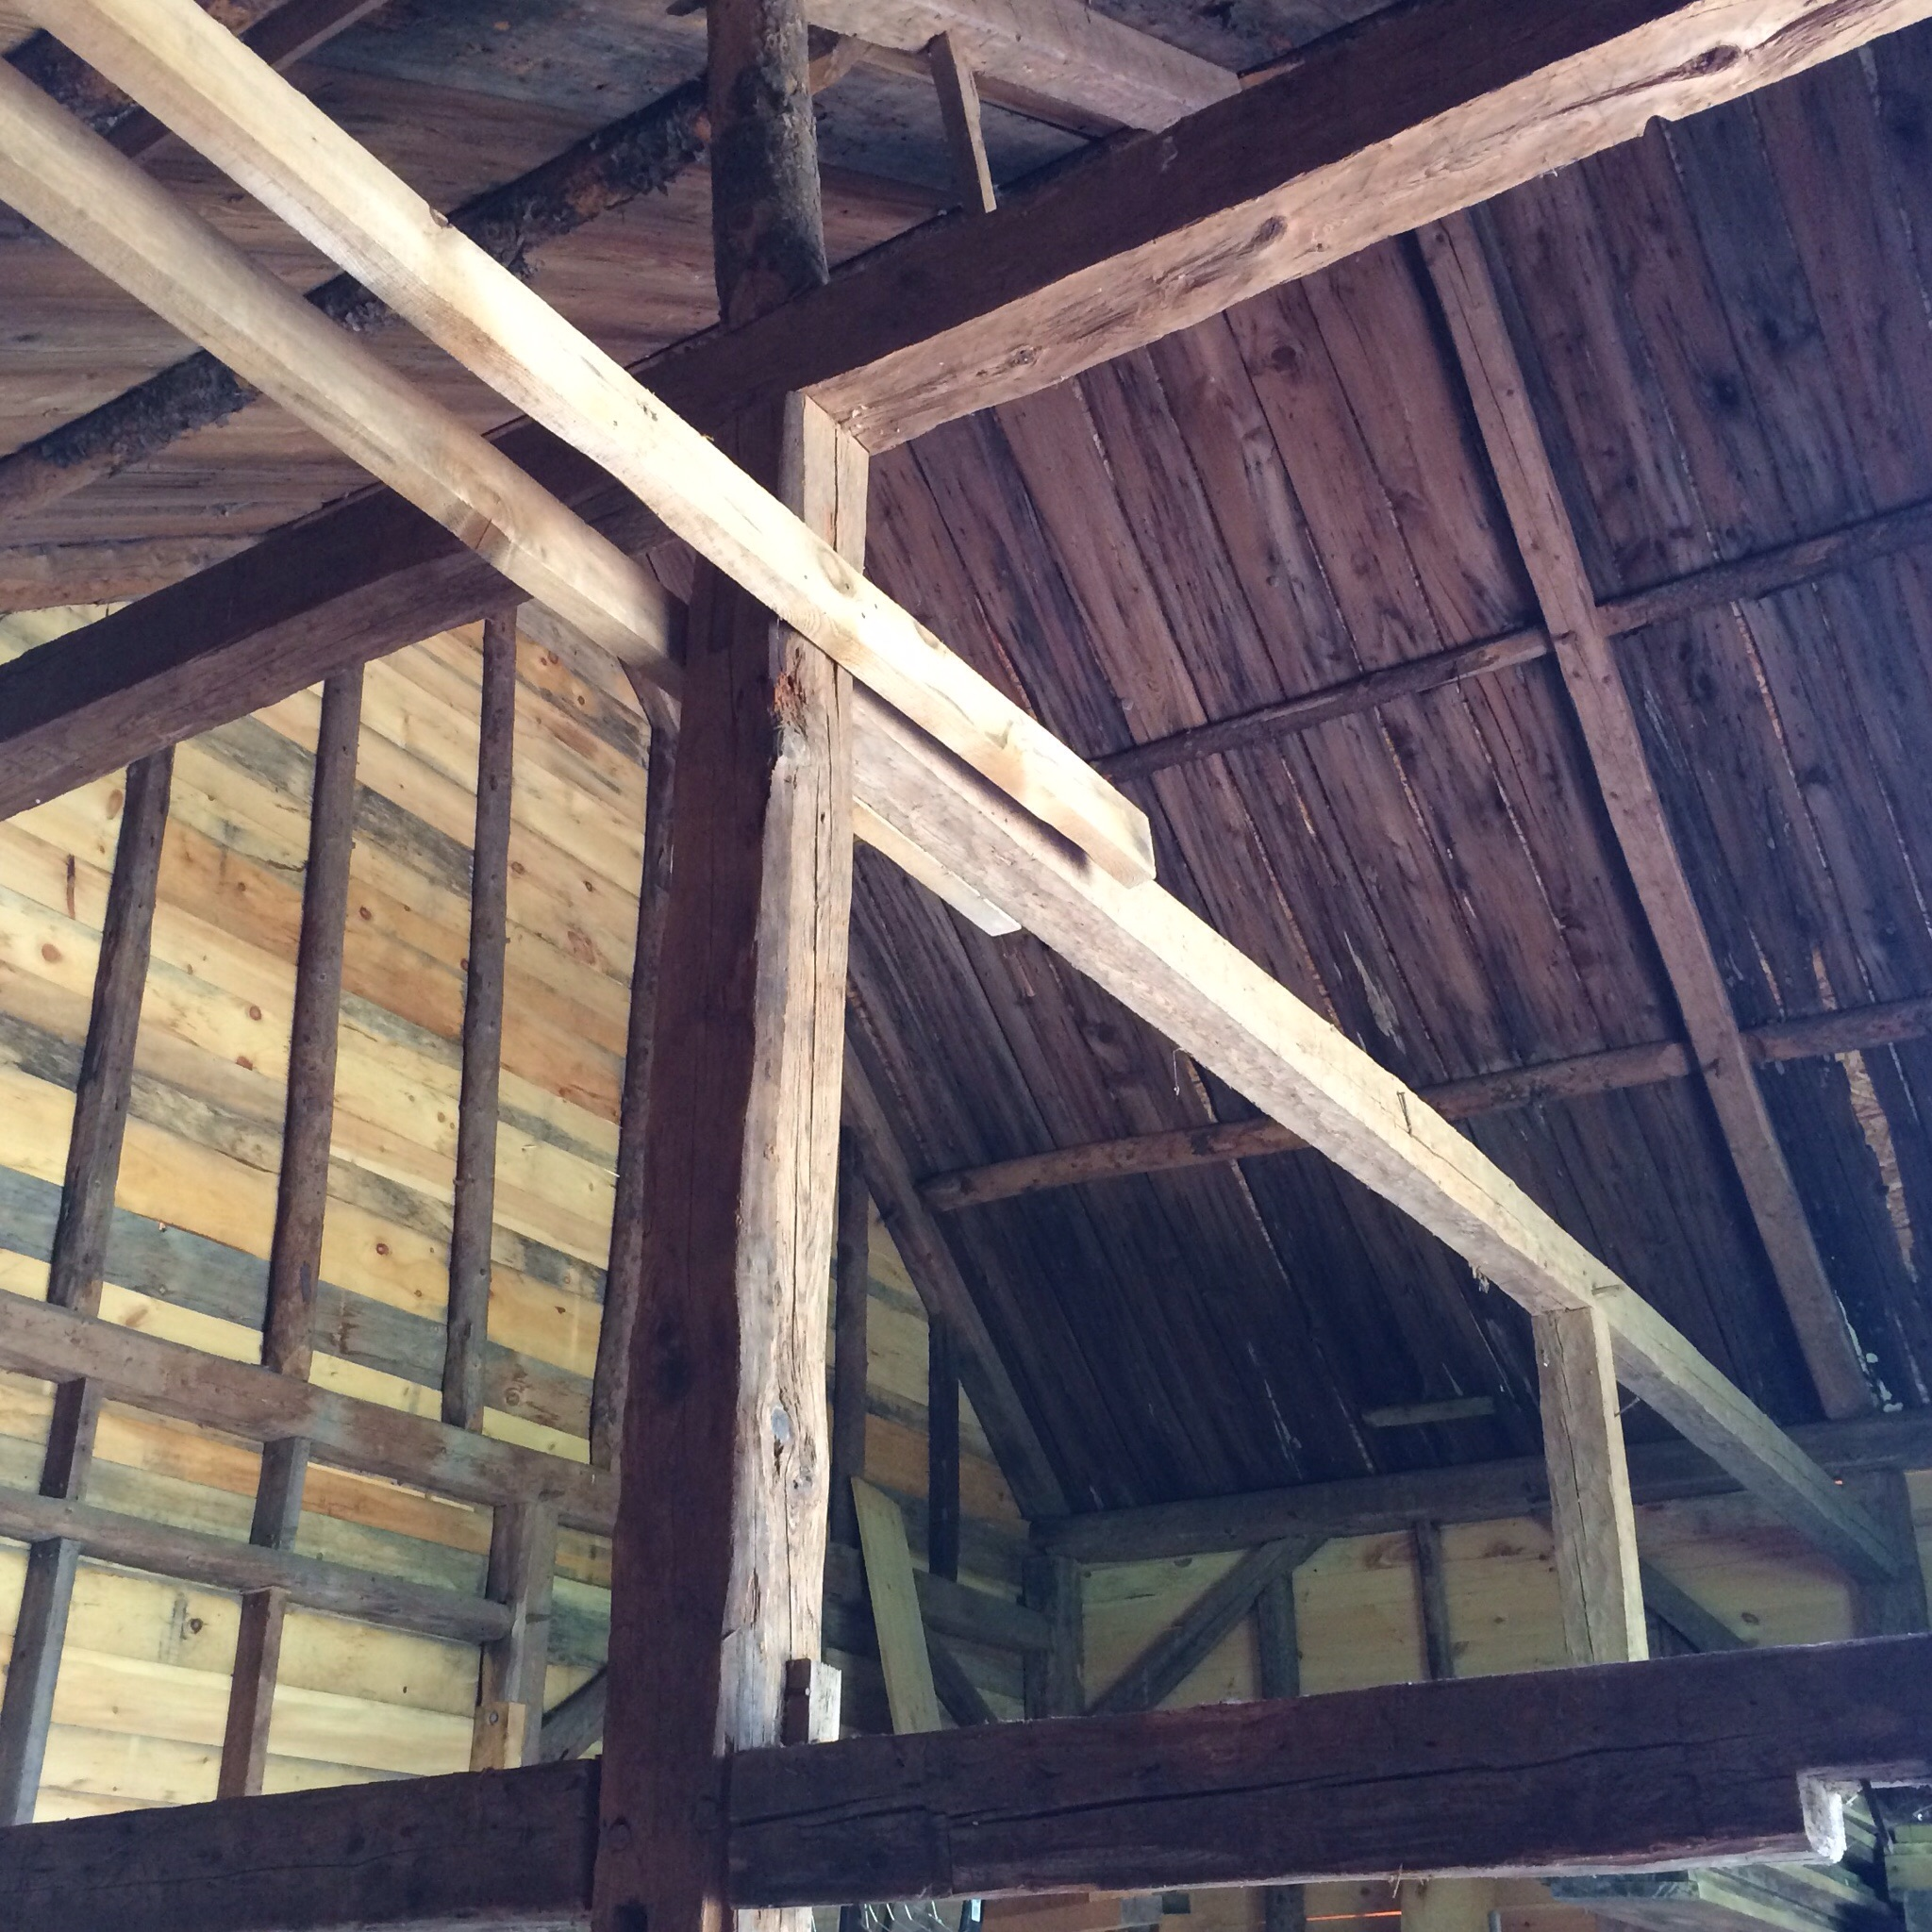 The inside of my parents' barn, circa 1700-something. They had the structure restored recently and my dad is in the process of finishing renovations and adding a room for chickens.